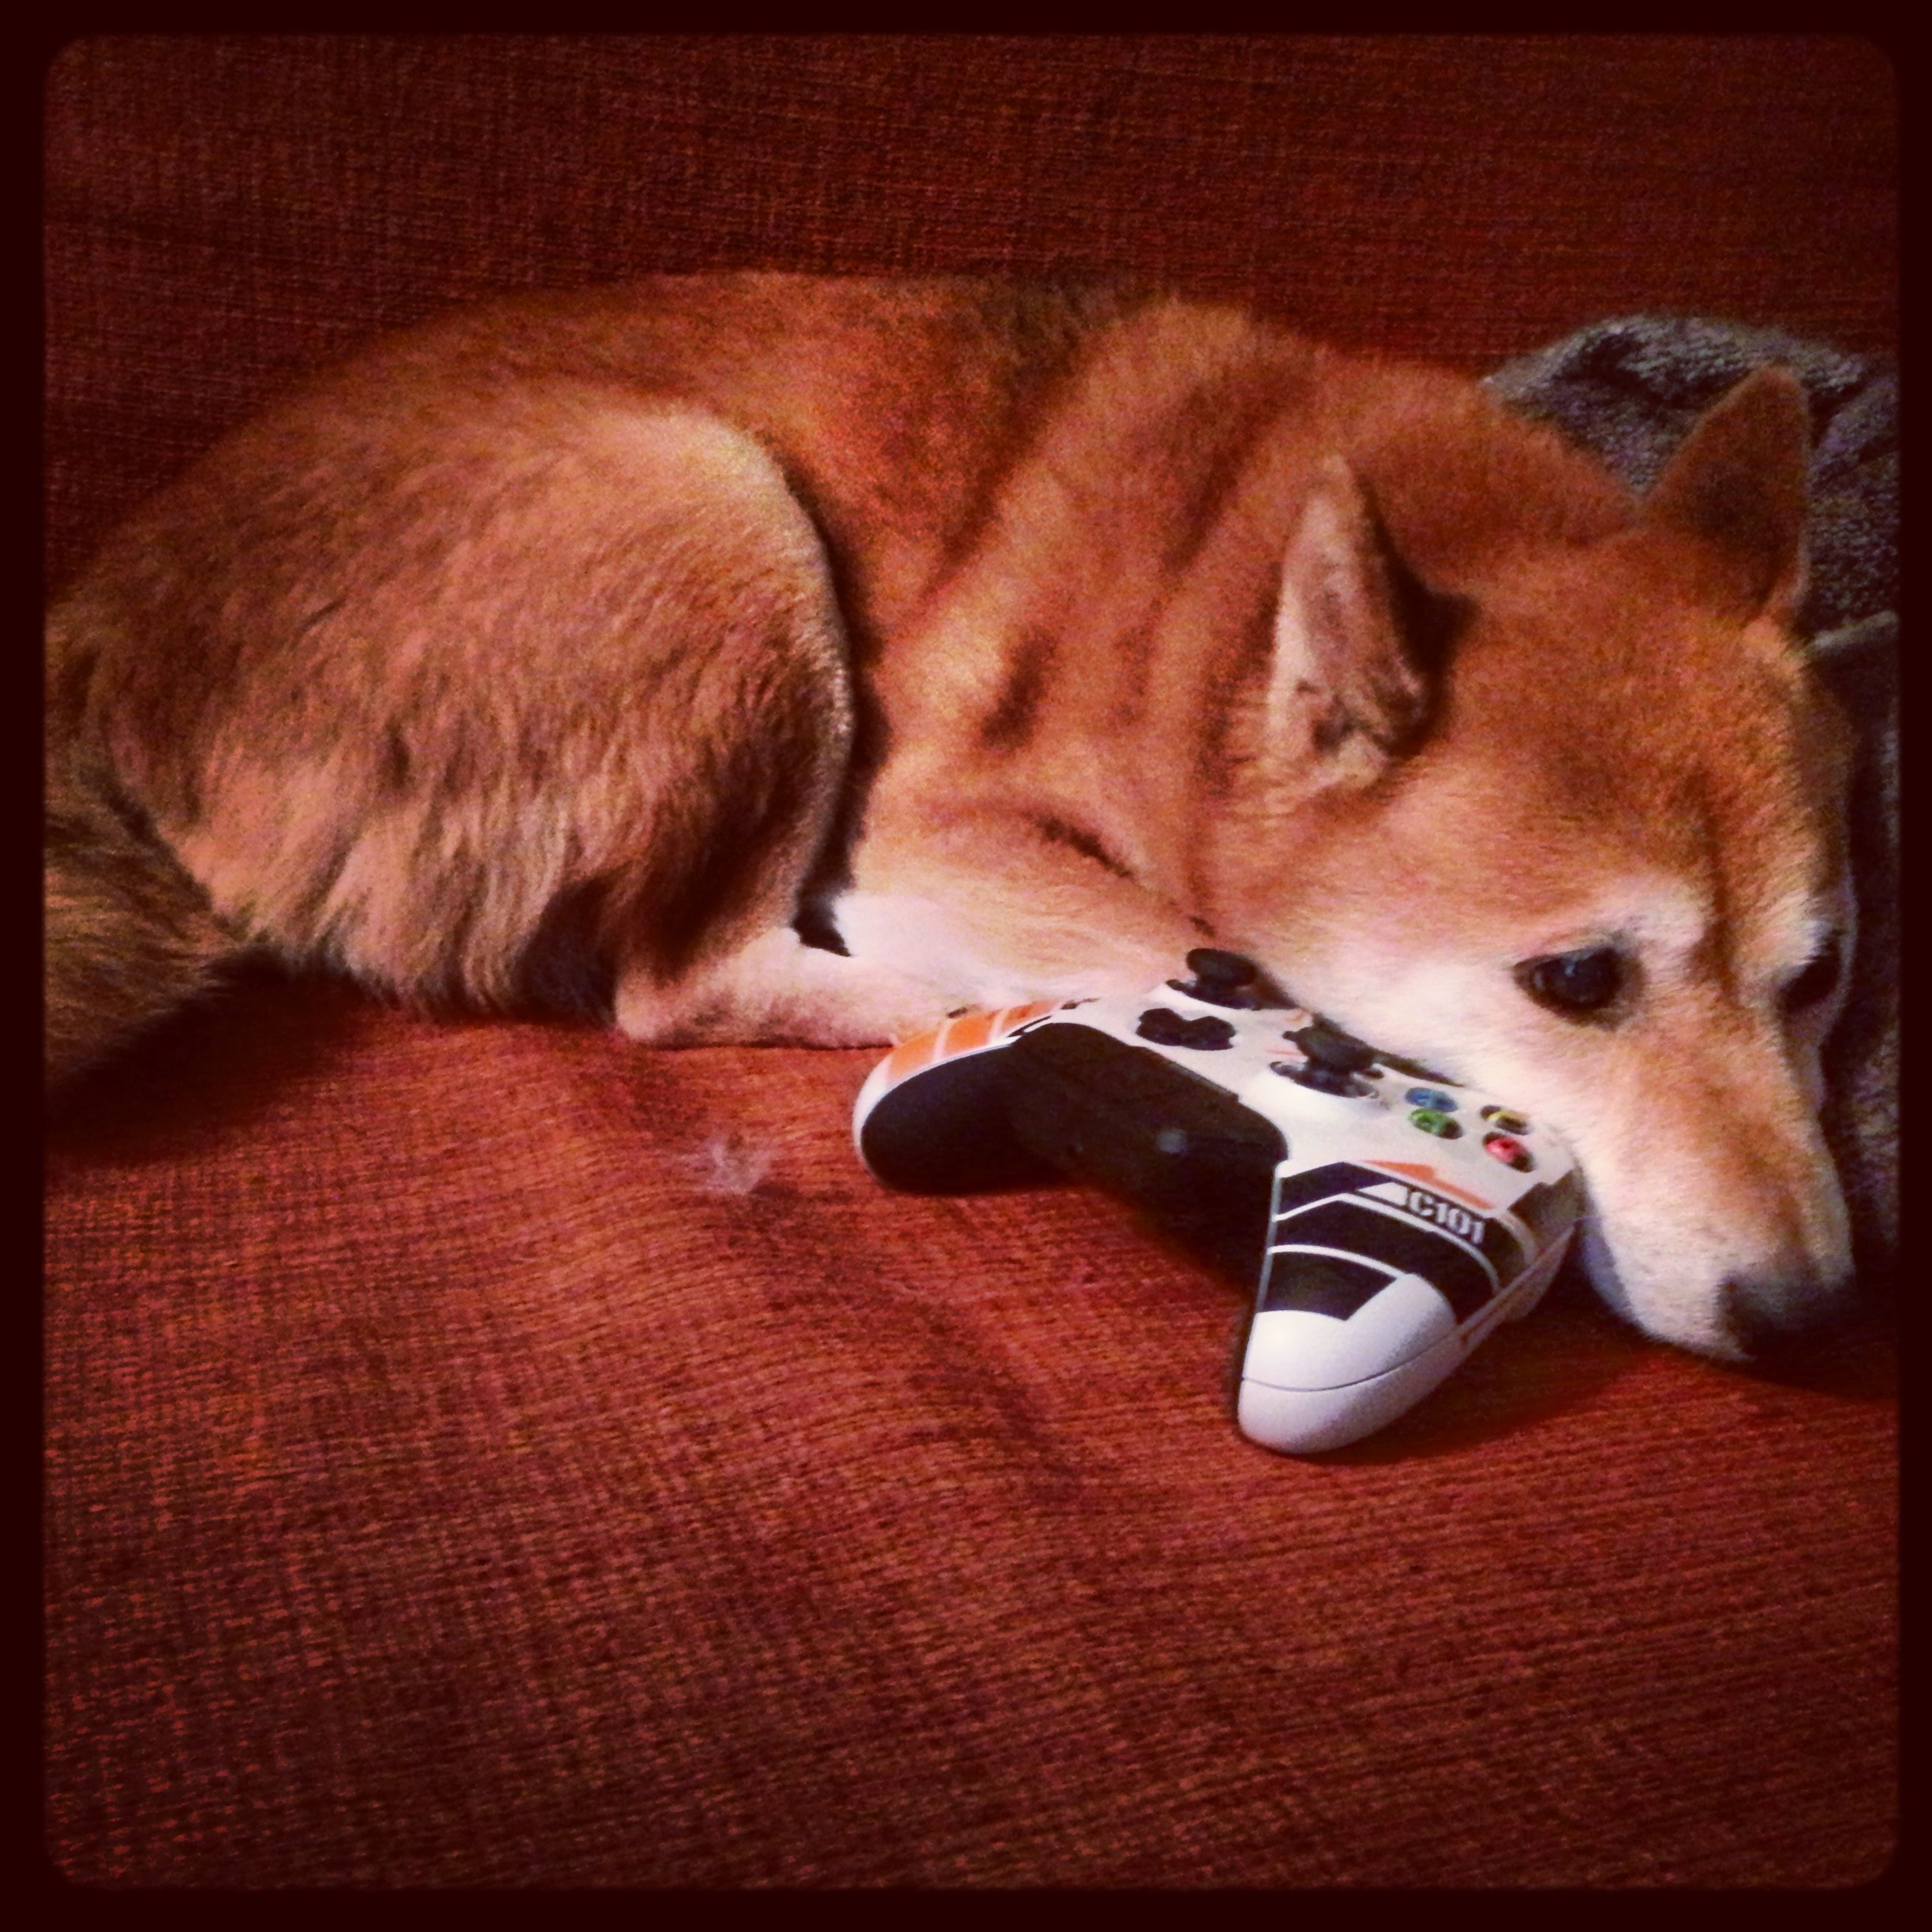 Taka Hana playing Xbox